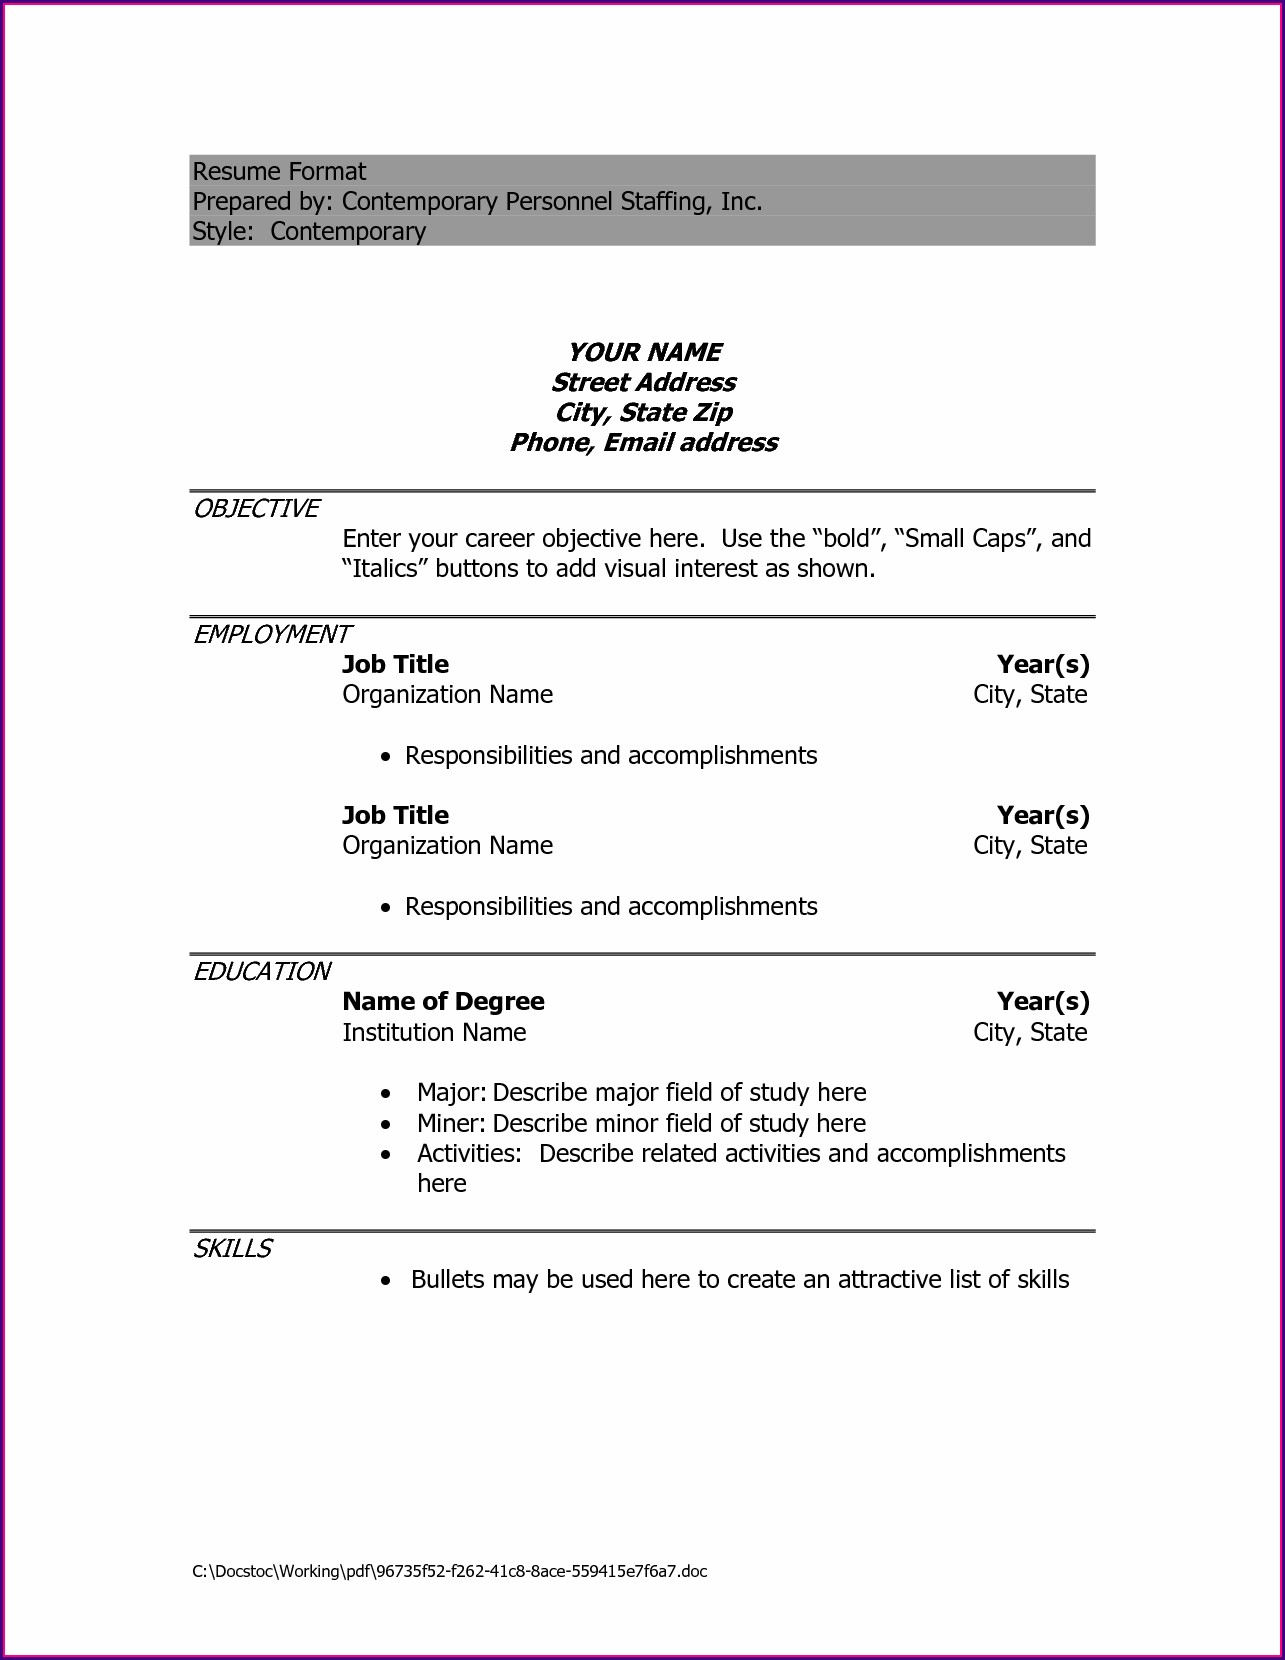 Professional Simple Resume Format Download